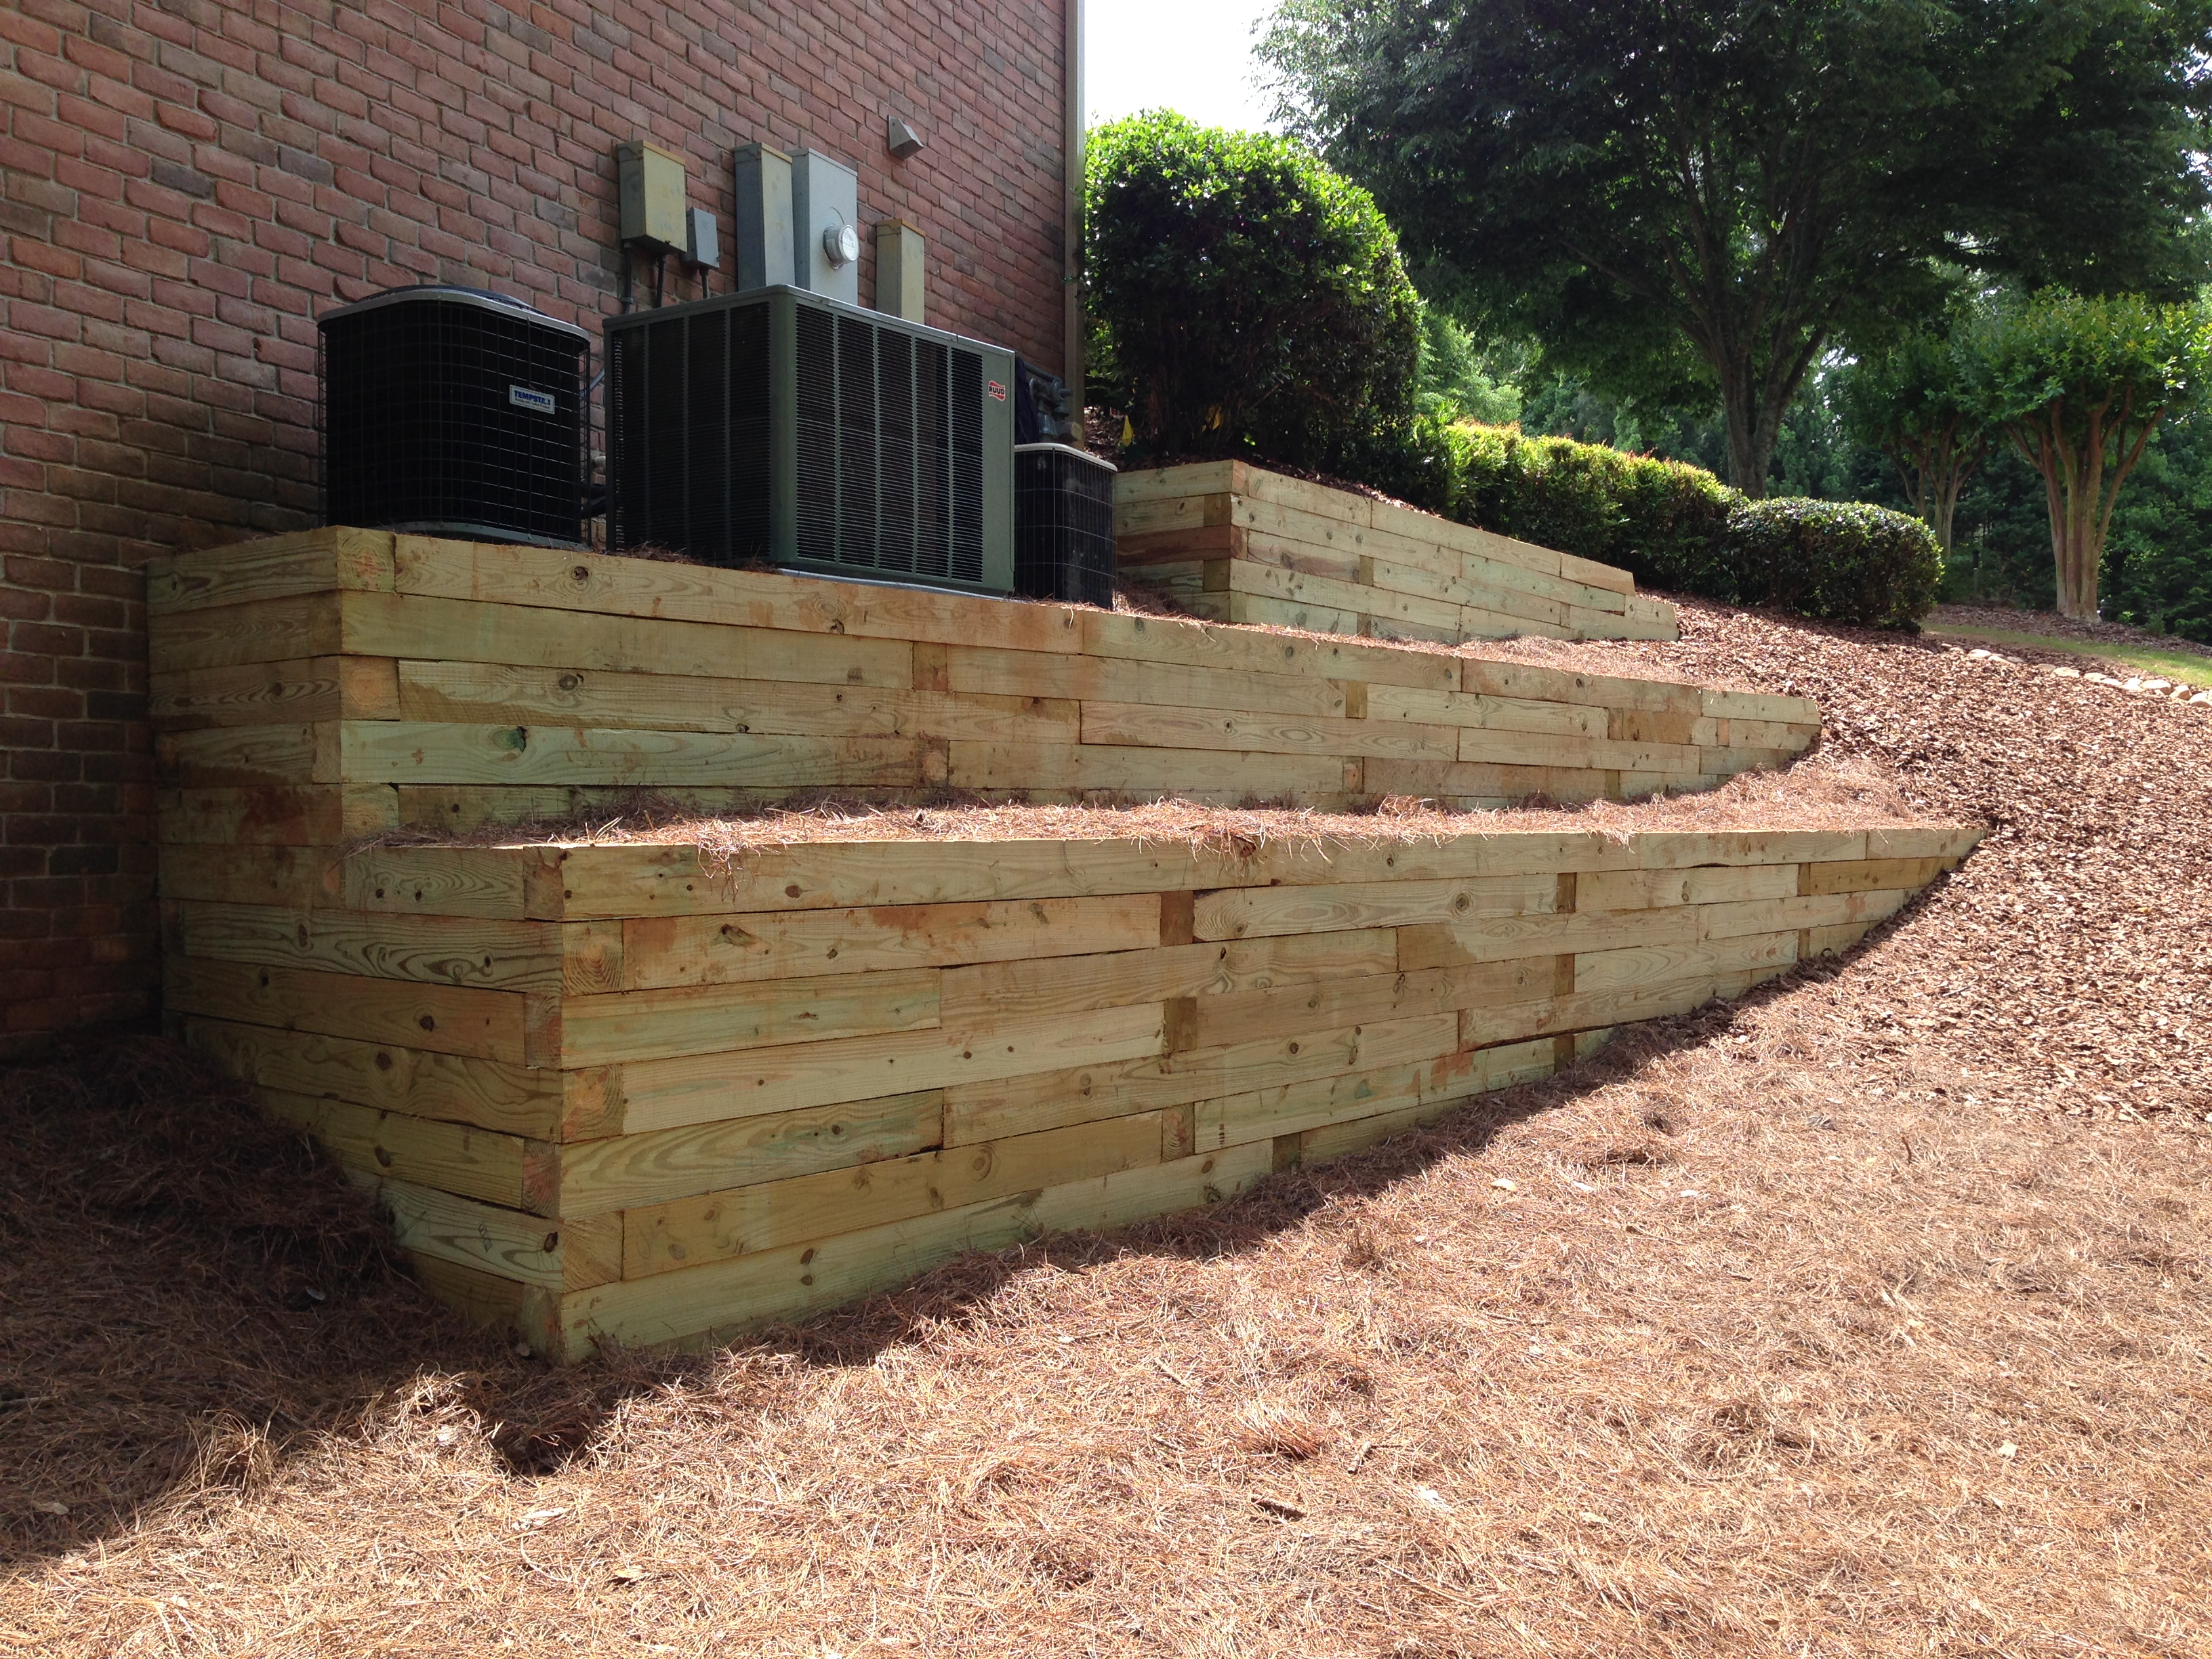 A series of retaining walls made of timber hold up the platform for heating and cooling units outside of a house.